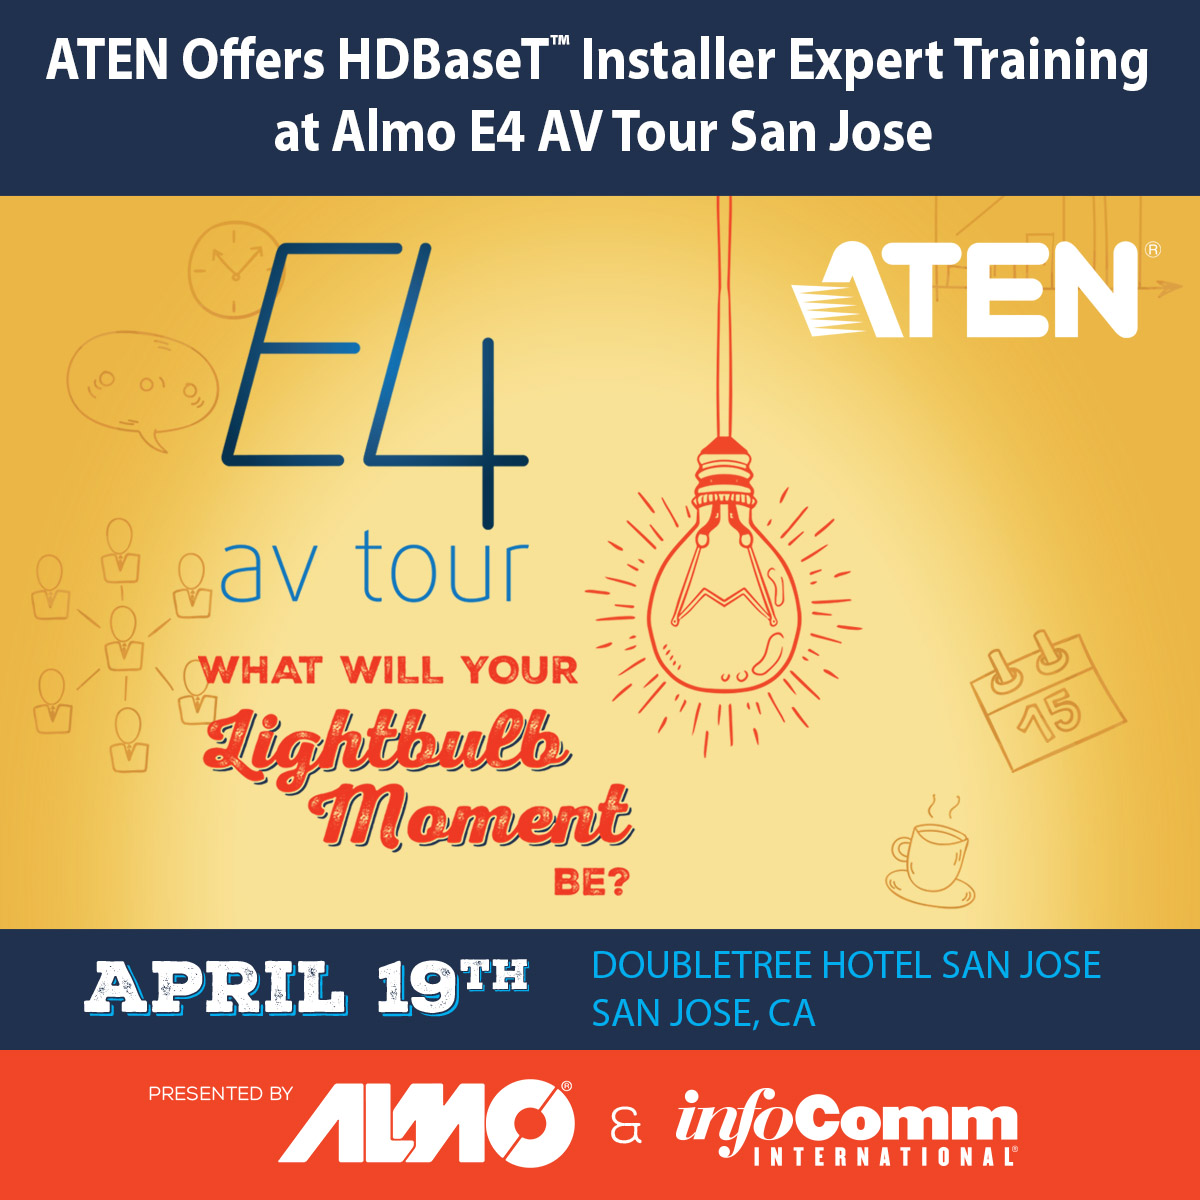 ATEN Offers HDBaseT Installer Expert Training at Almo E4 AV Tour San Jose